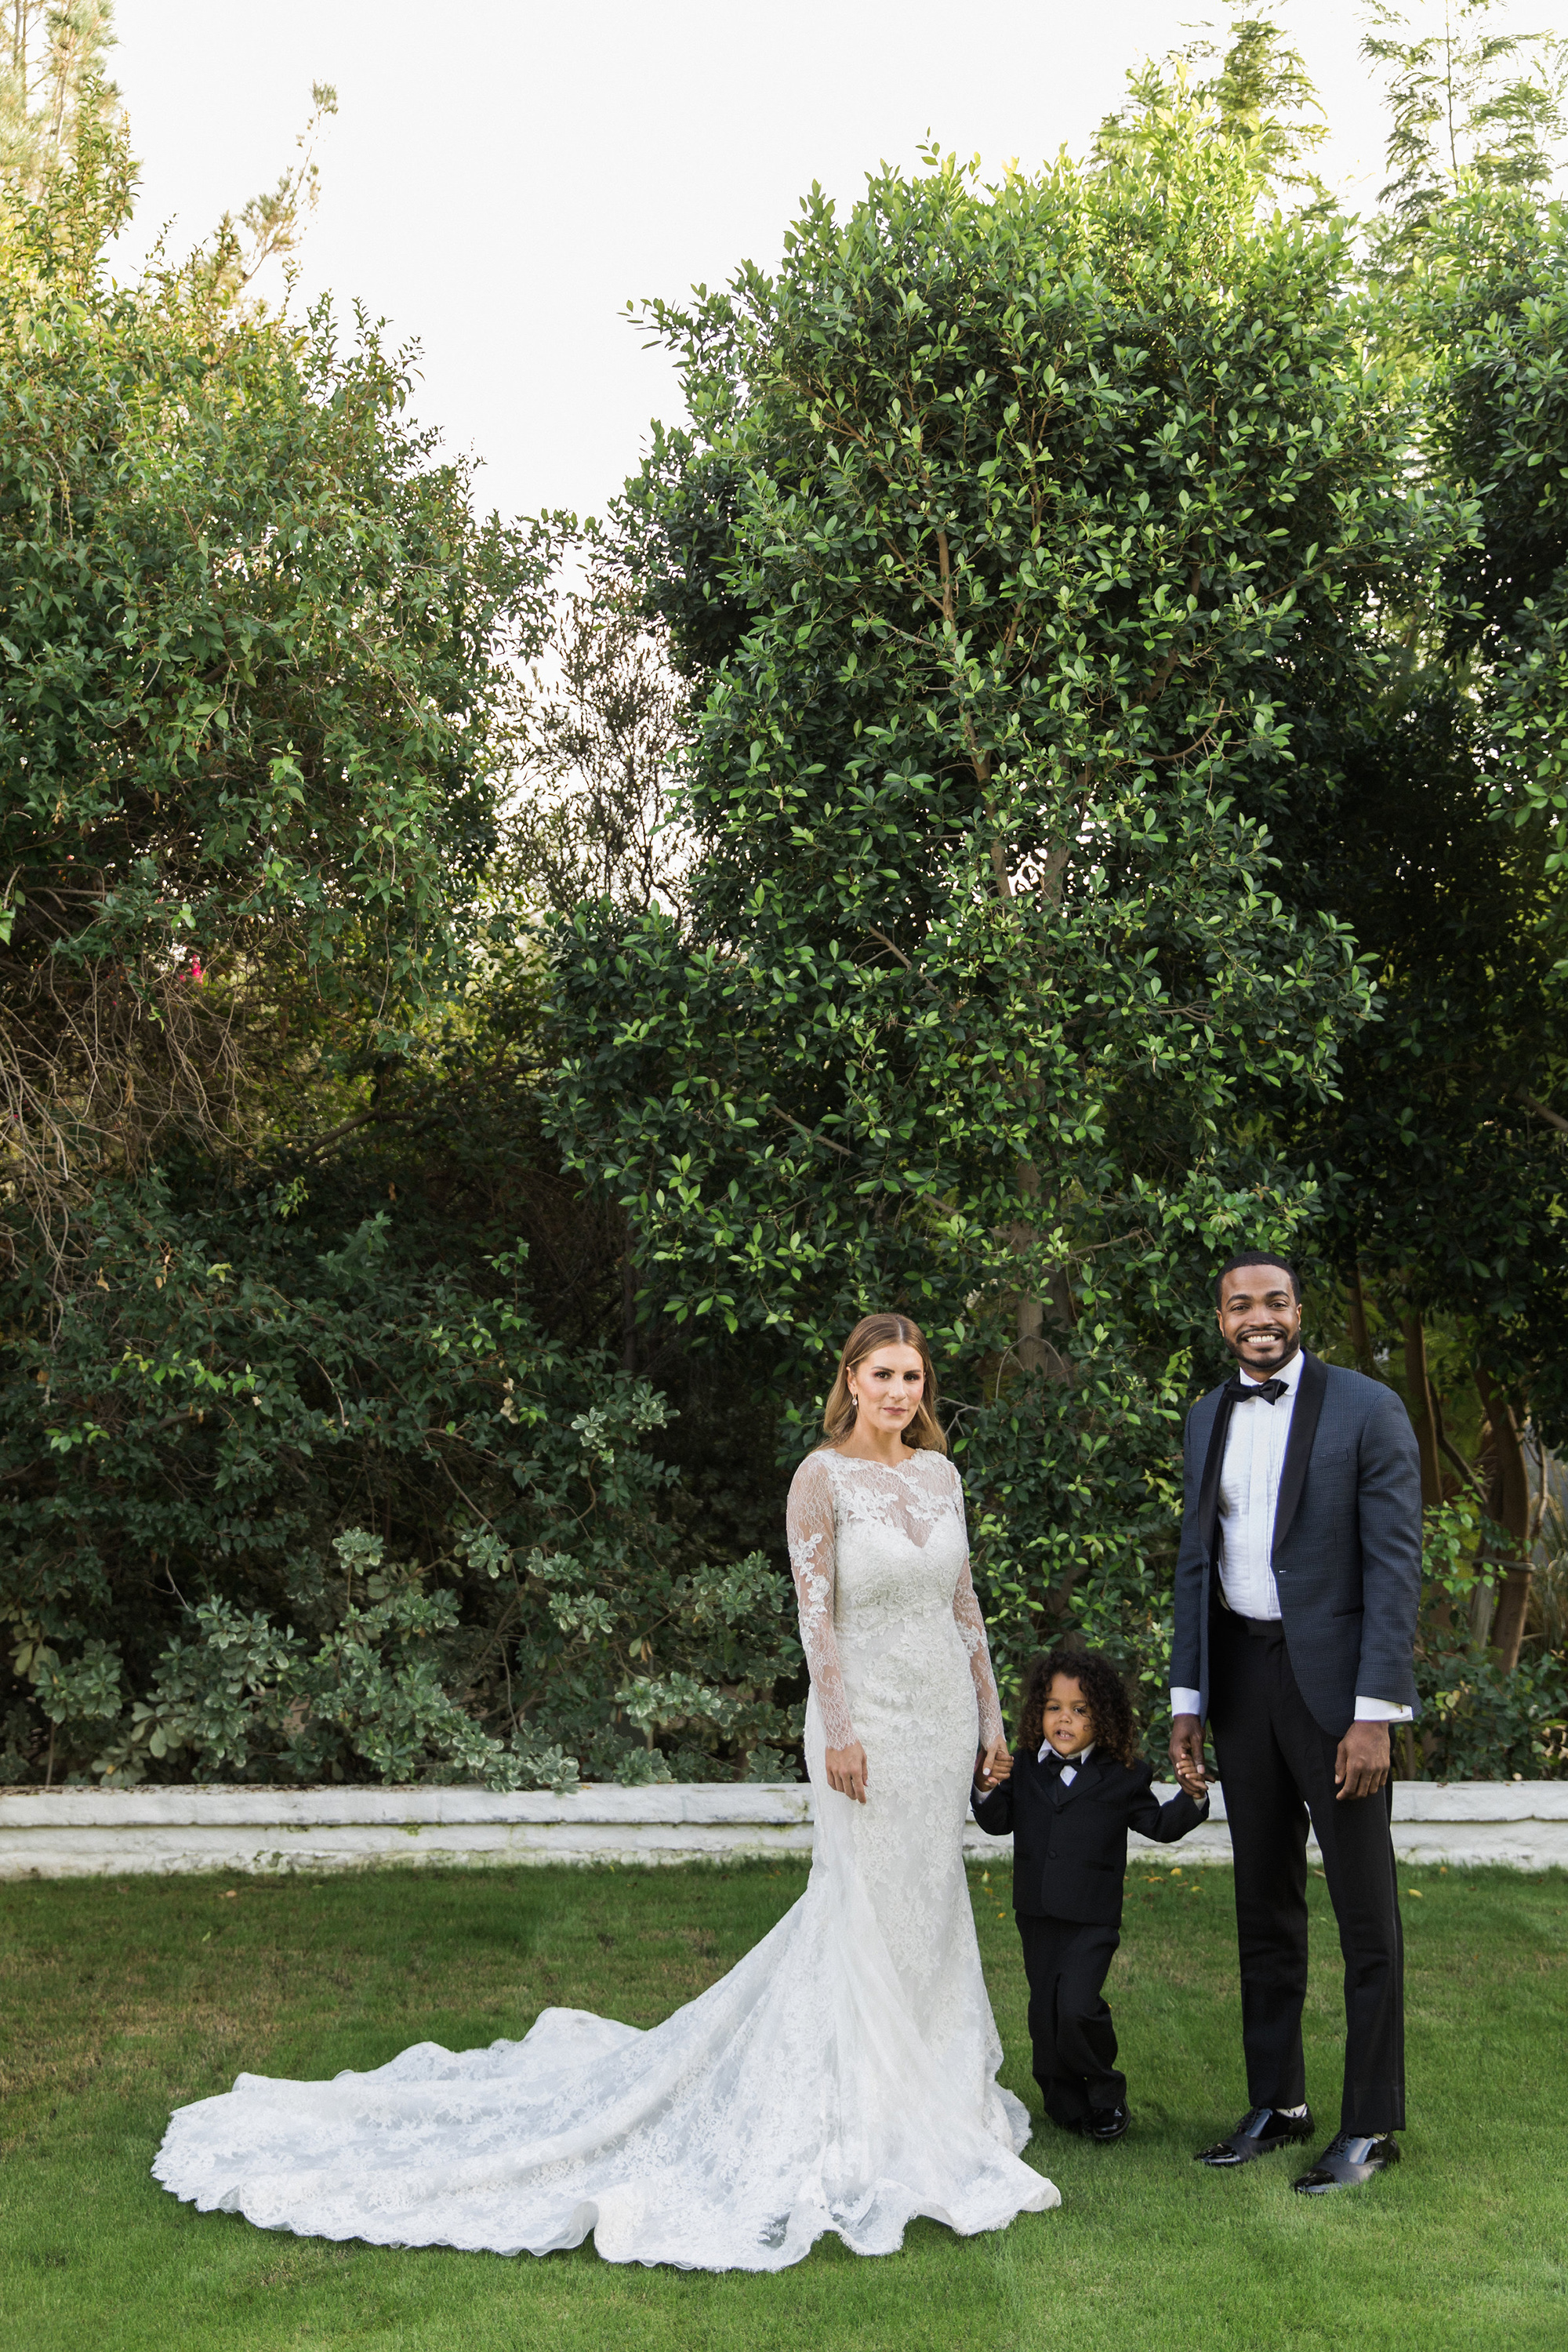 A Family-Focused Destination Wedding in Palm Springs